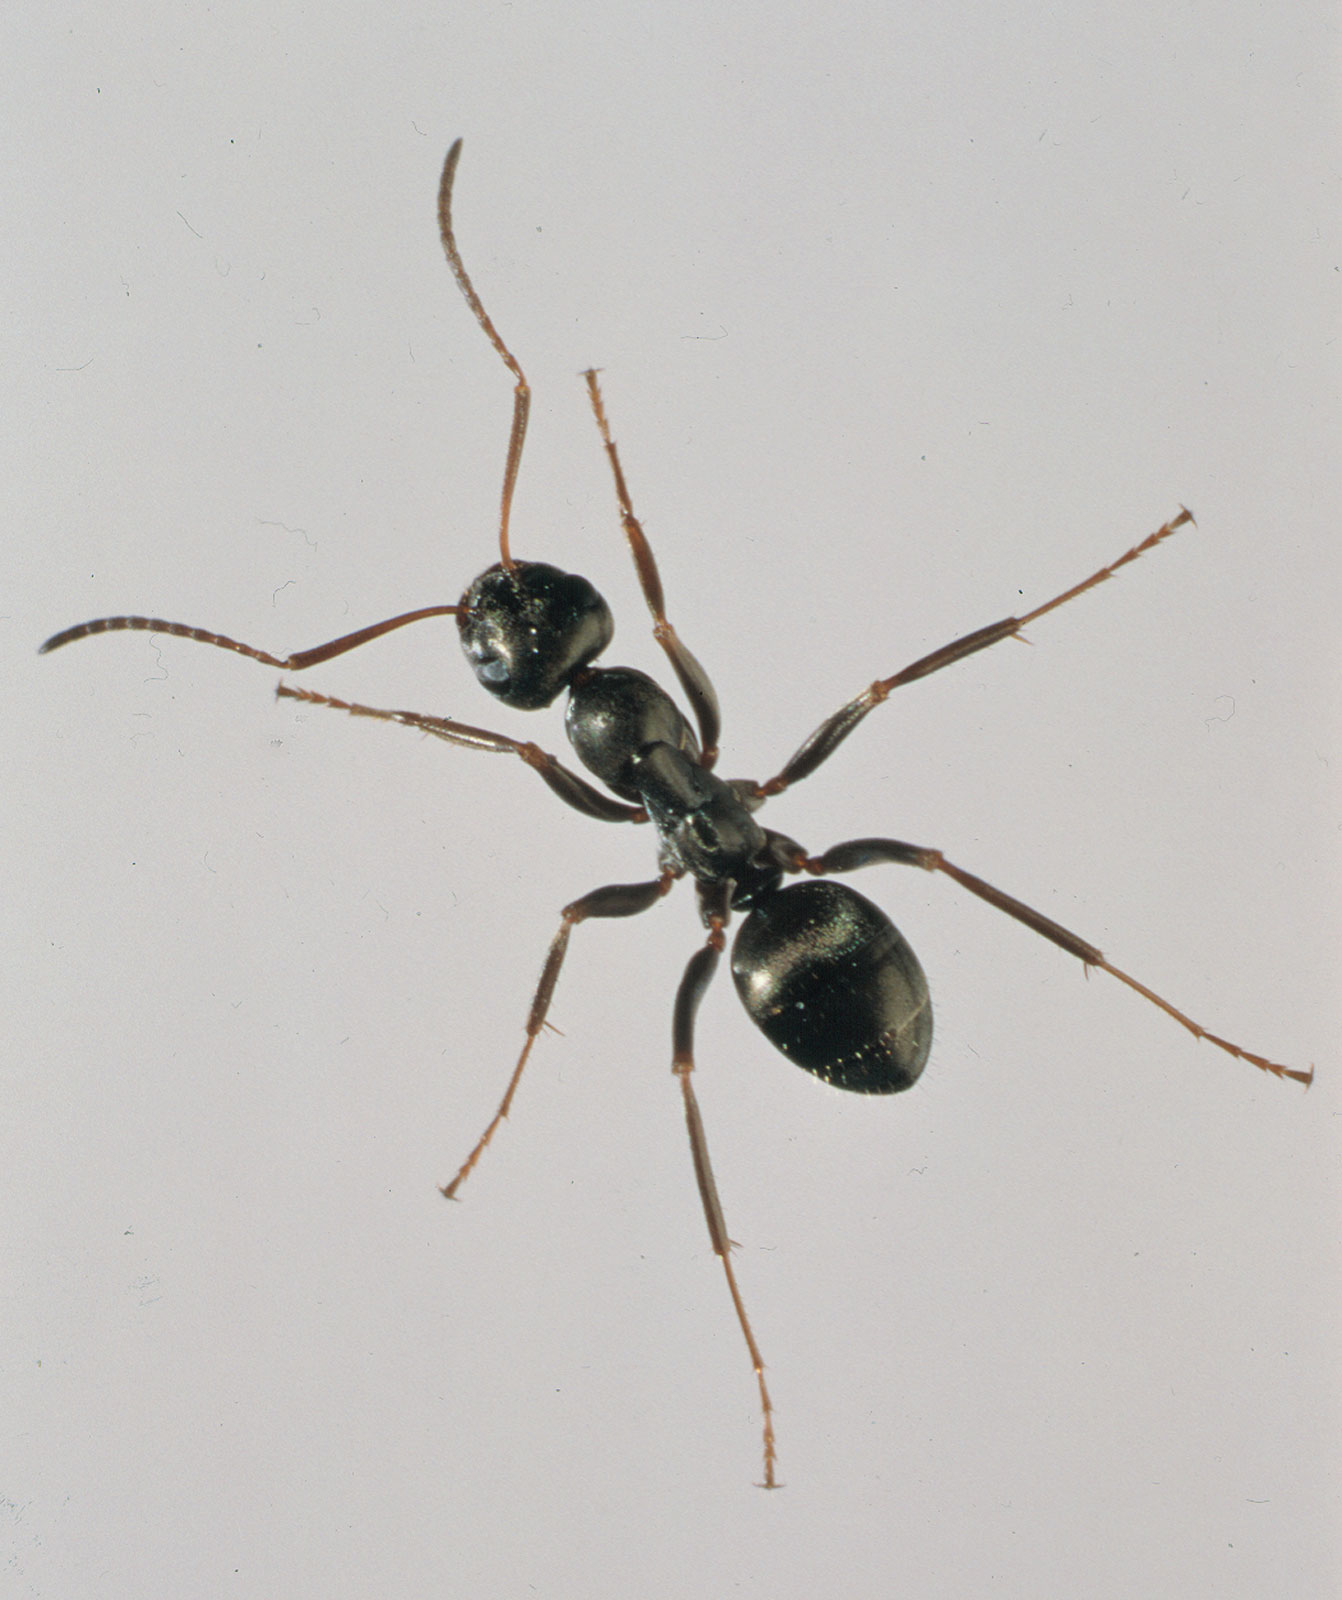 Ant Free Images At Clker